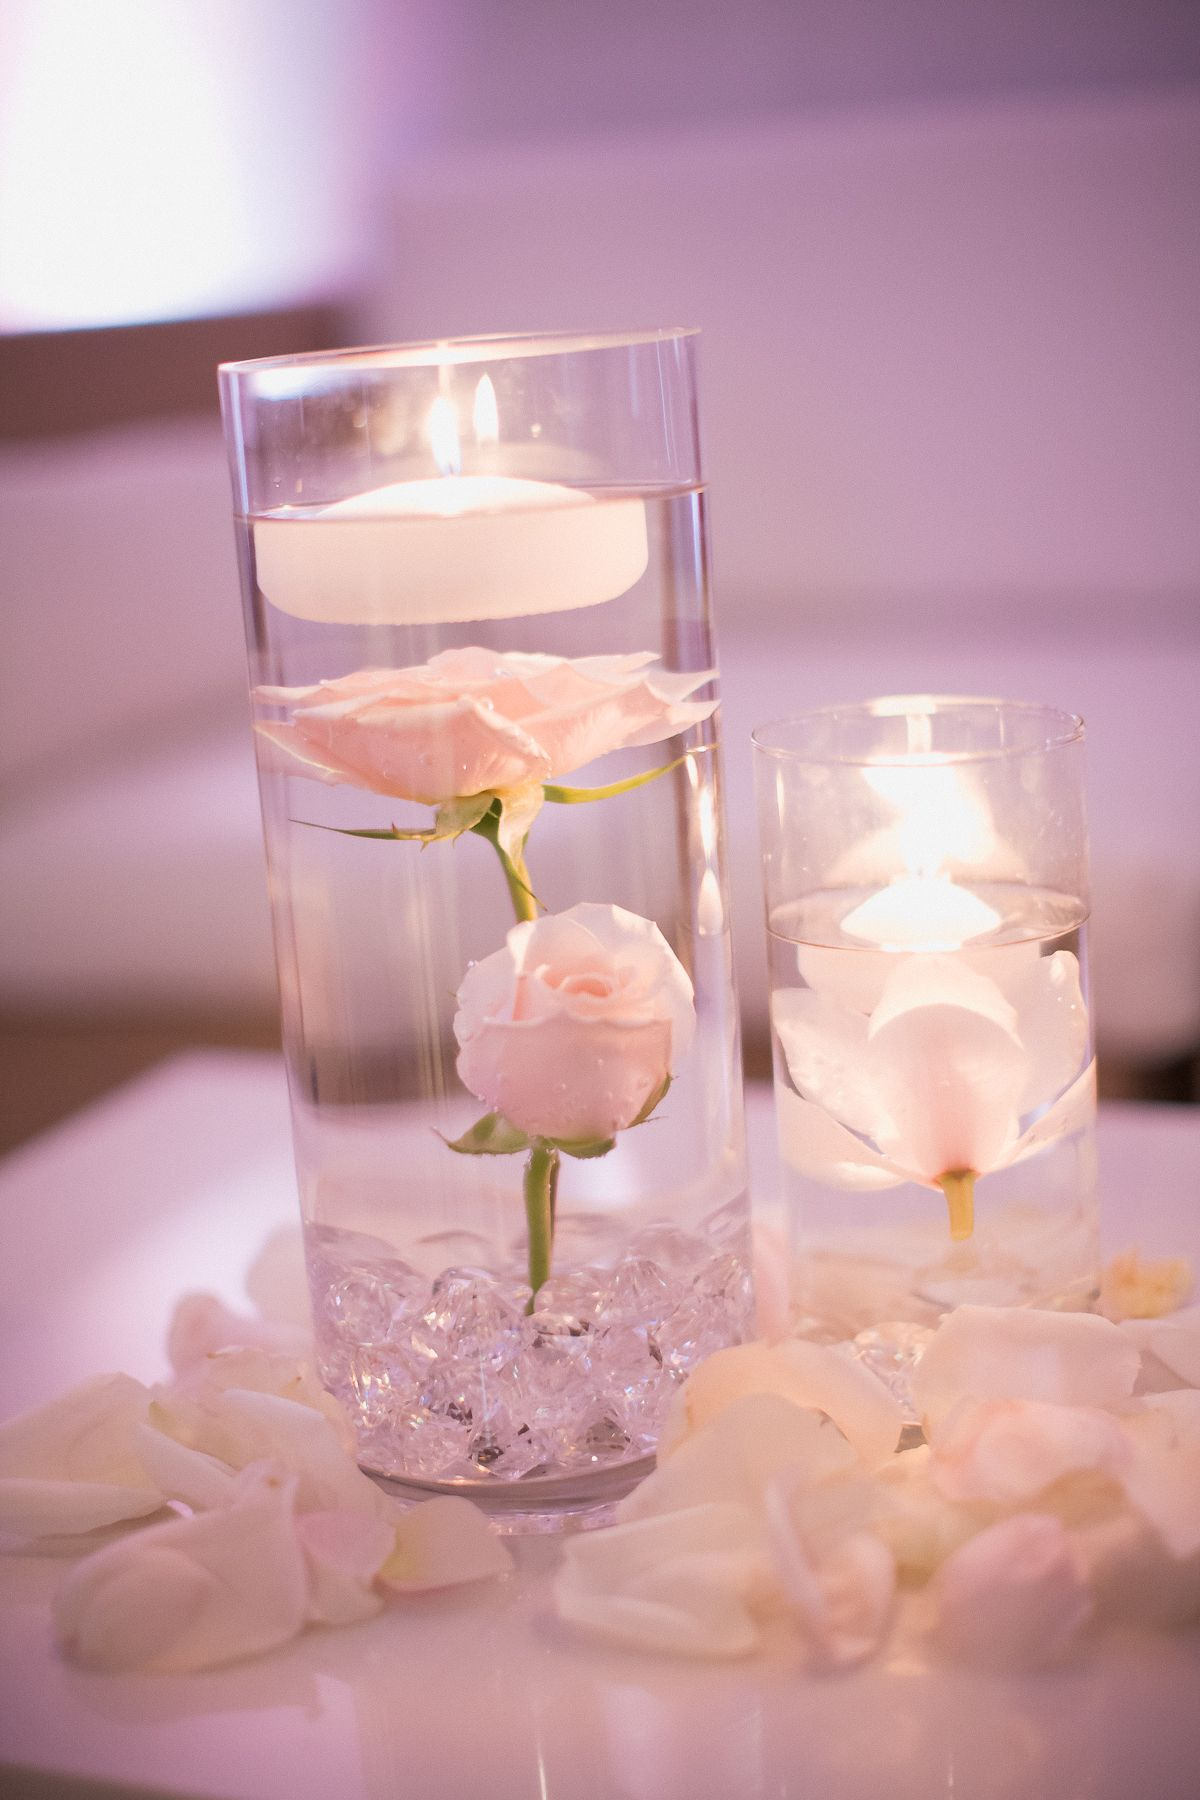 Submerged Flower Centerpiece Blush and ivory wedding Roses orchids floati